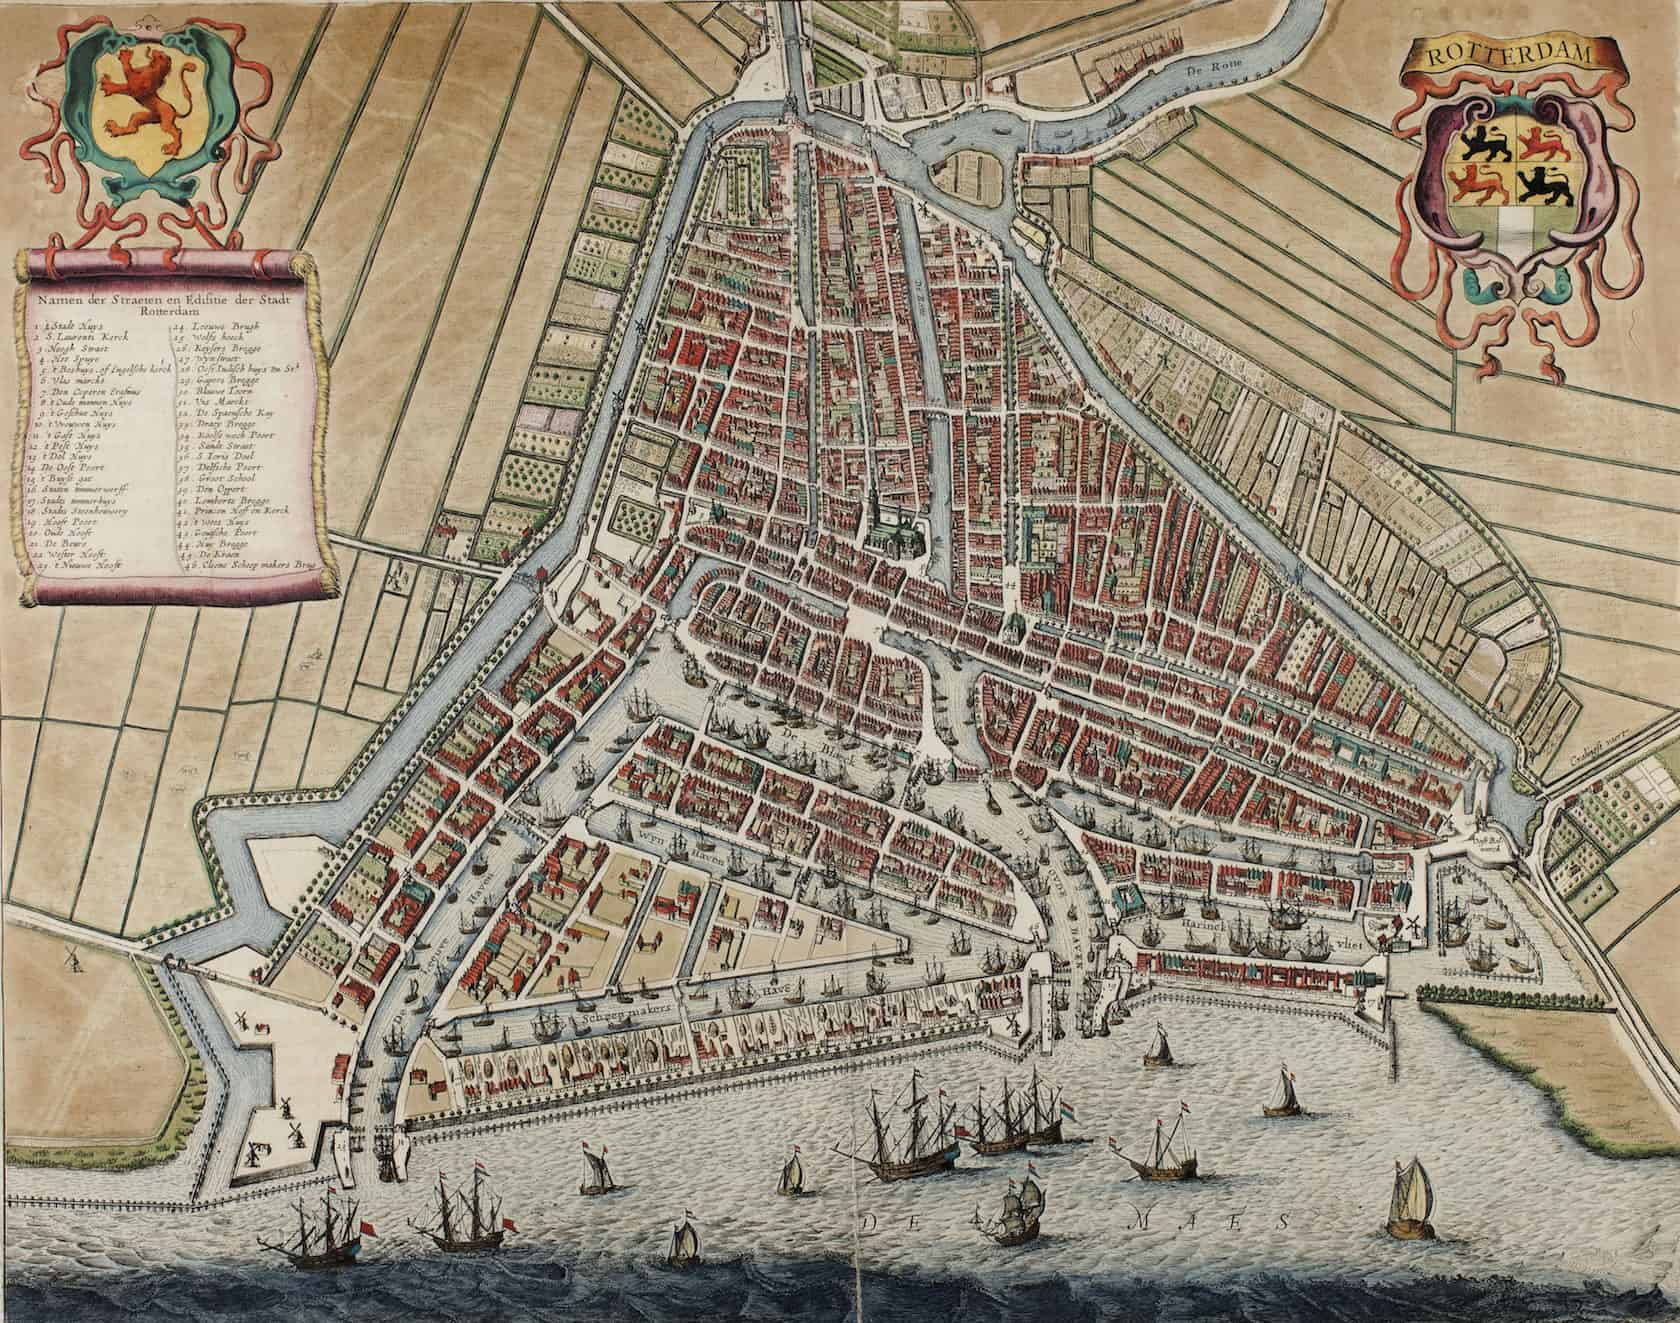 Old Rotterdam map - Baron Vermouth